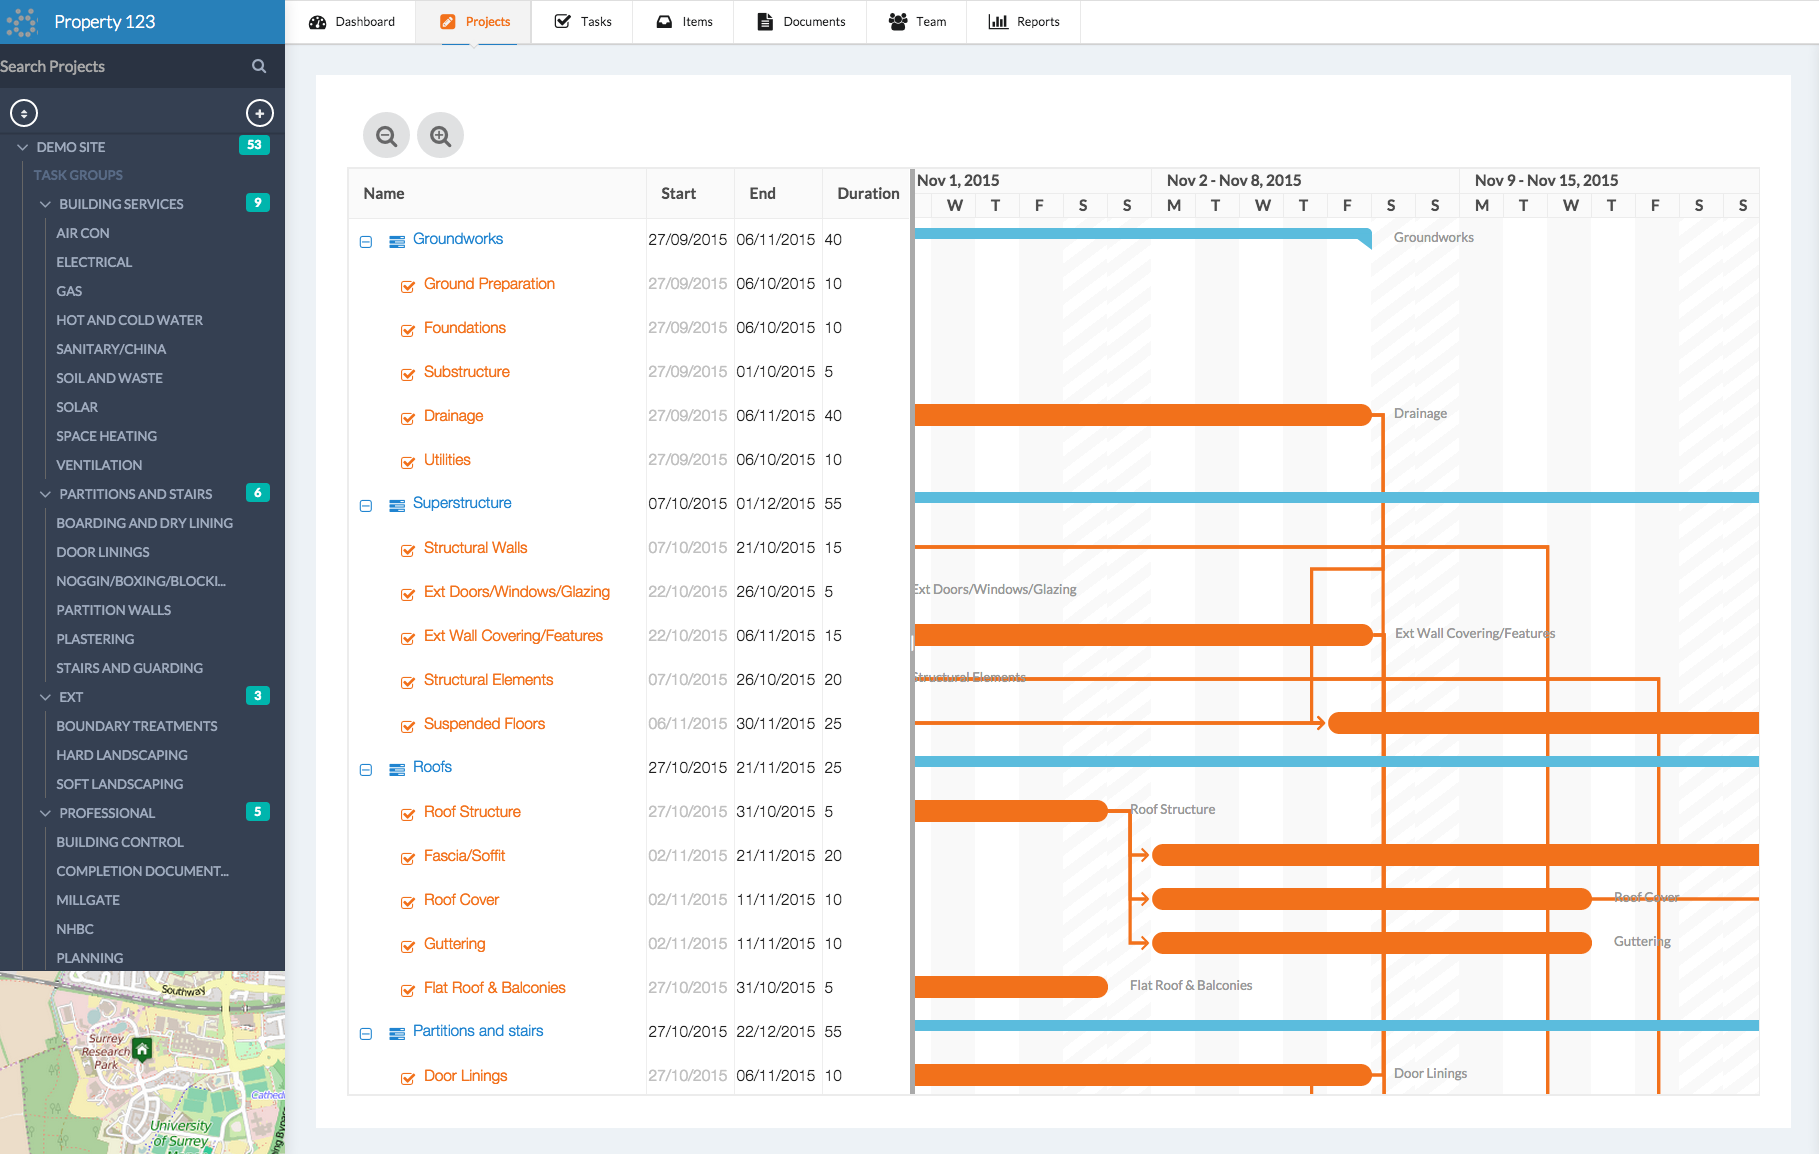 ManagePlaces includes a built-in Gantt chart for project planning and scheduling